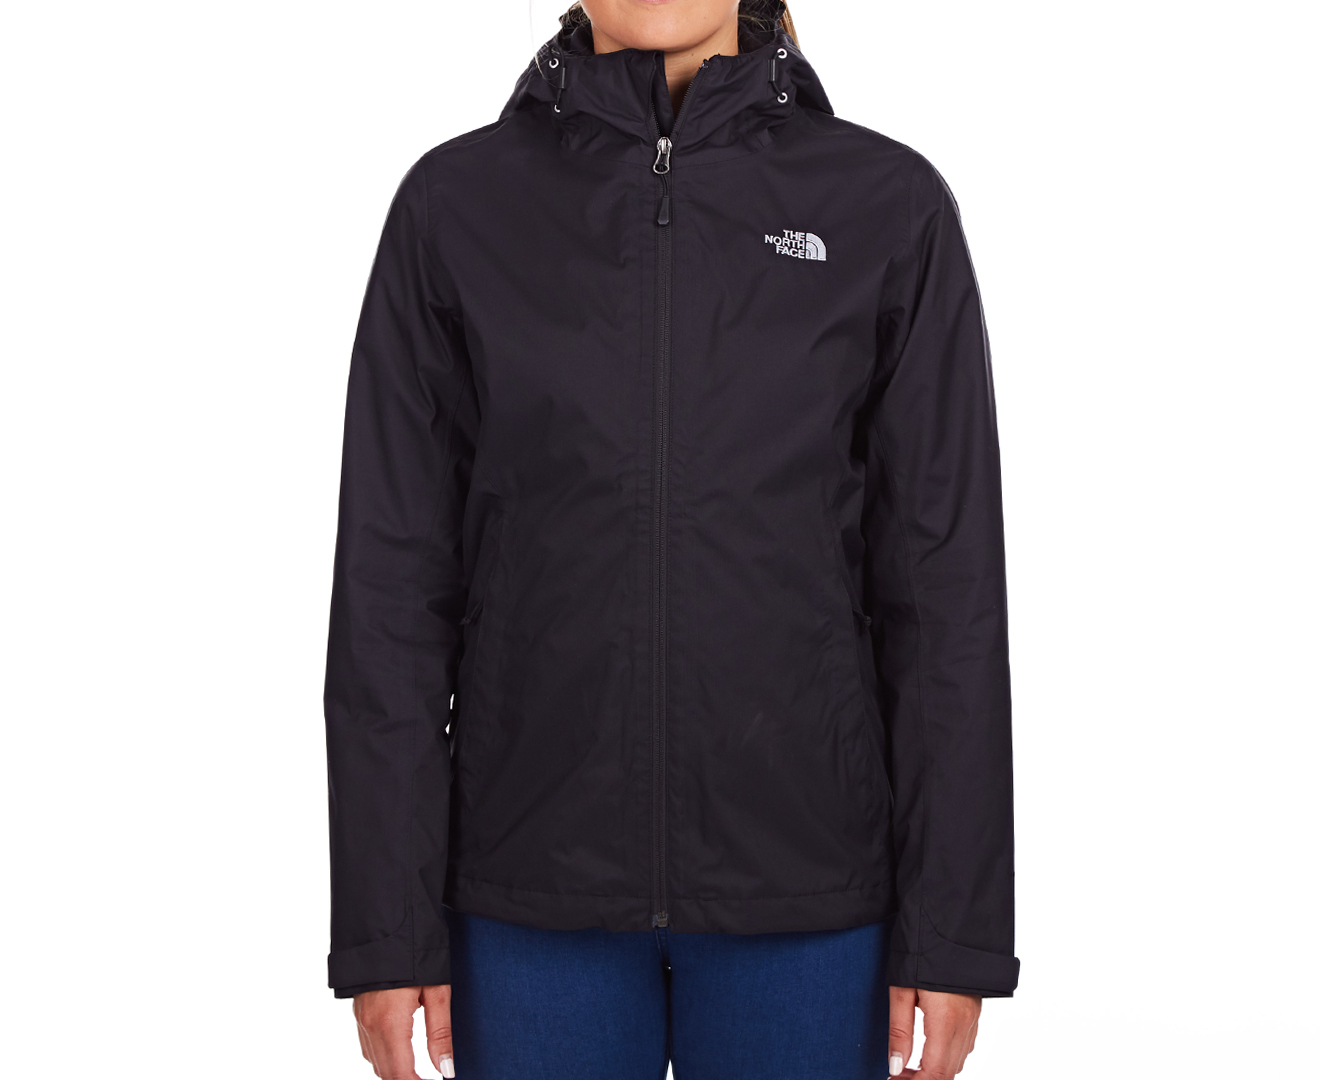 ... where to buy the north face womens arrowood triclimate jacket fleece  black catch.au 208ce bc841927aabc